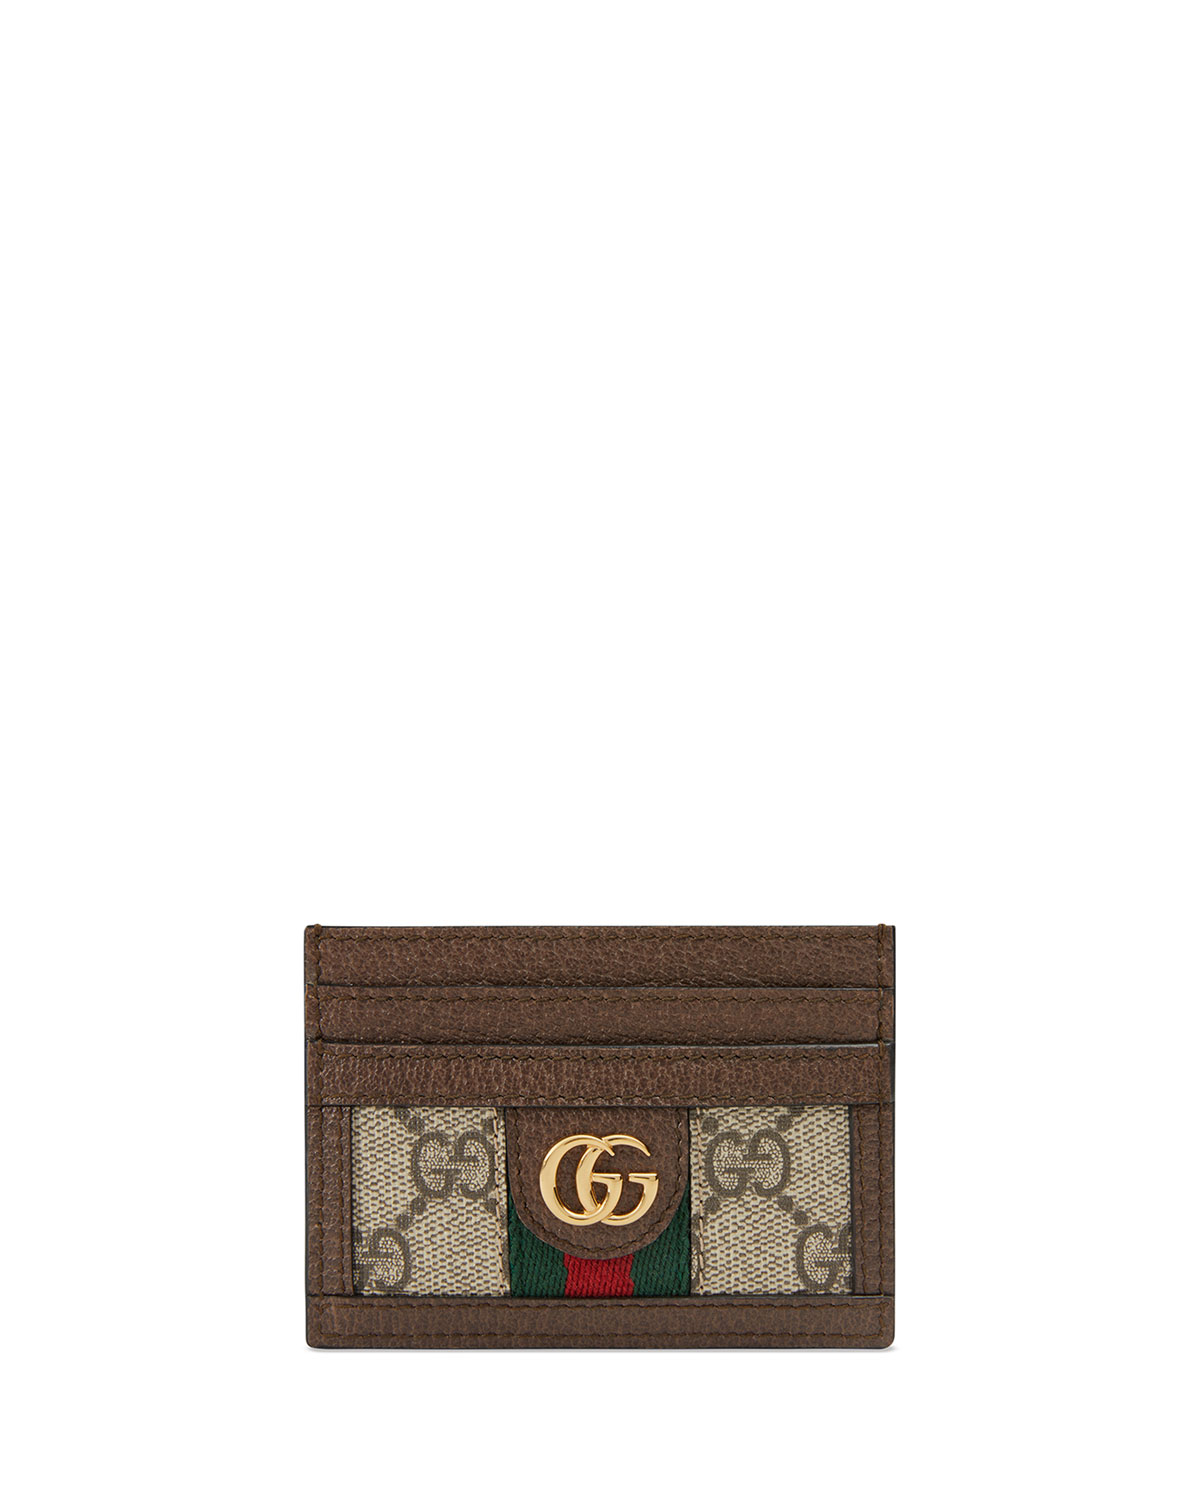 outlet store 0fa1c 135ee Ophidia GG Supreme Card Case